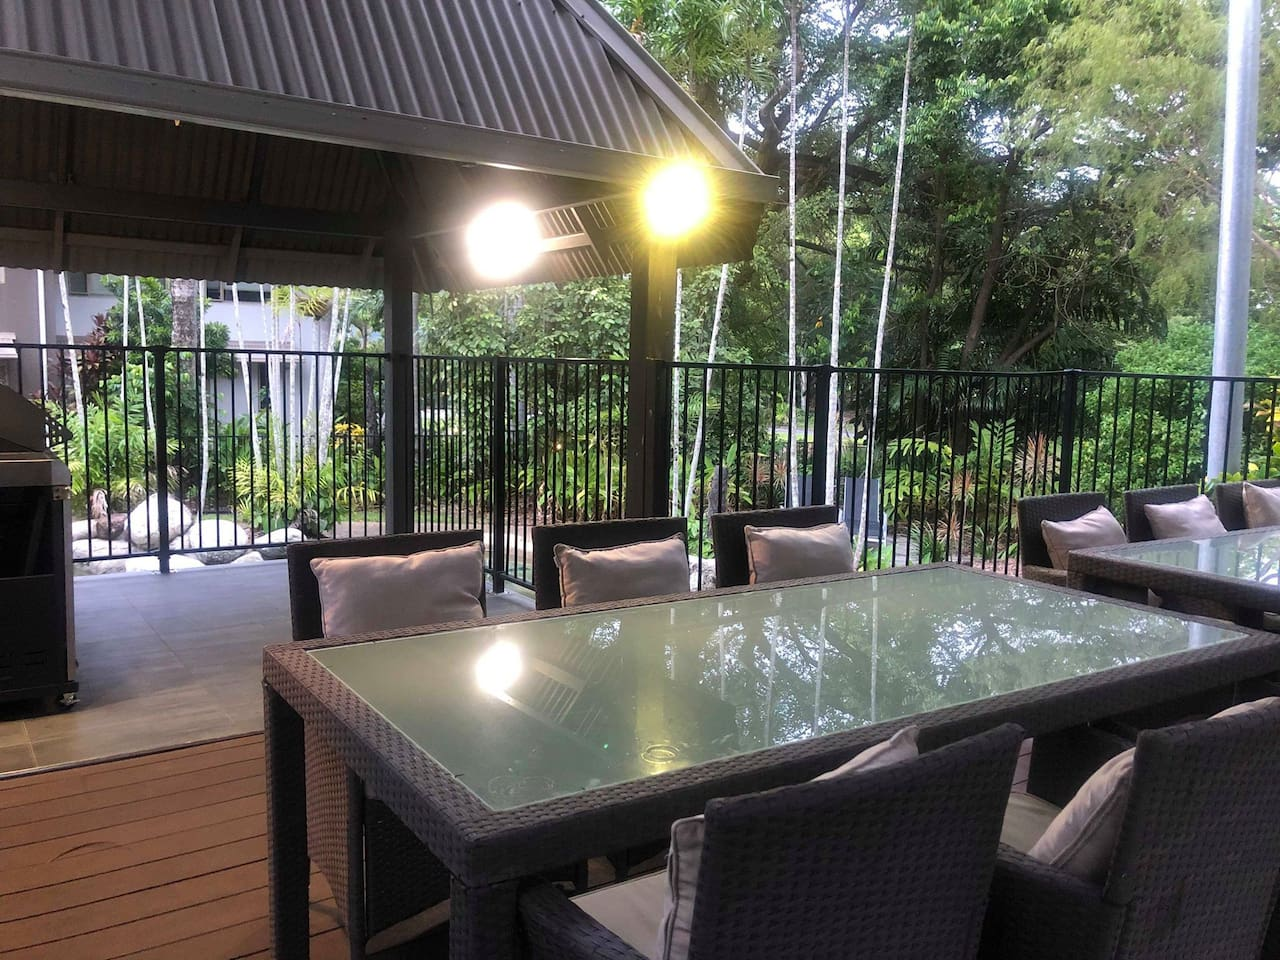 Outdoor Dining, BBQ and pool areas